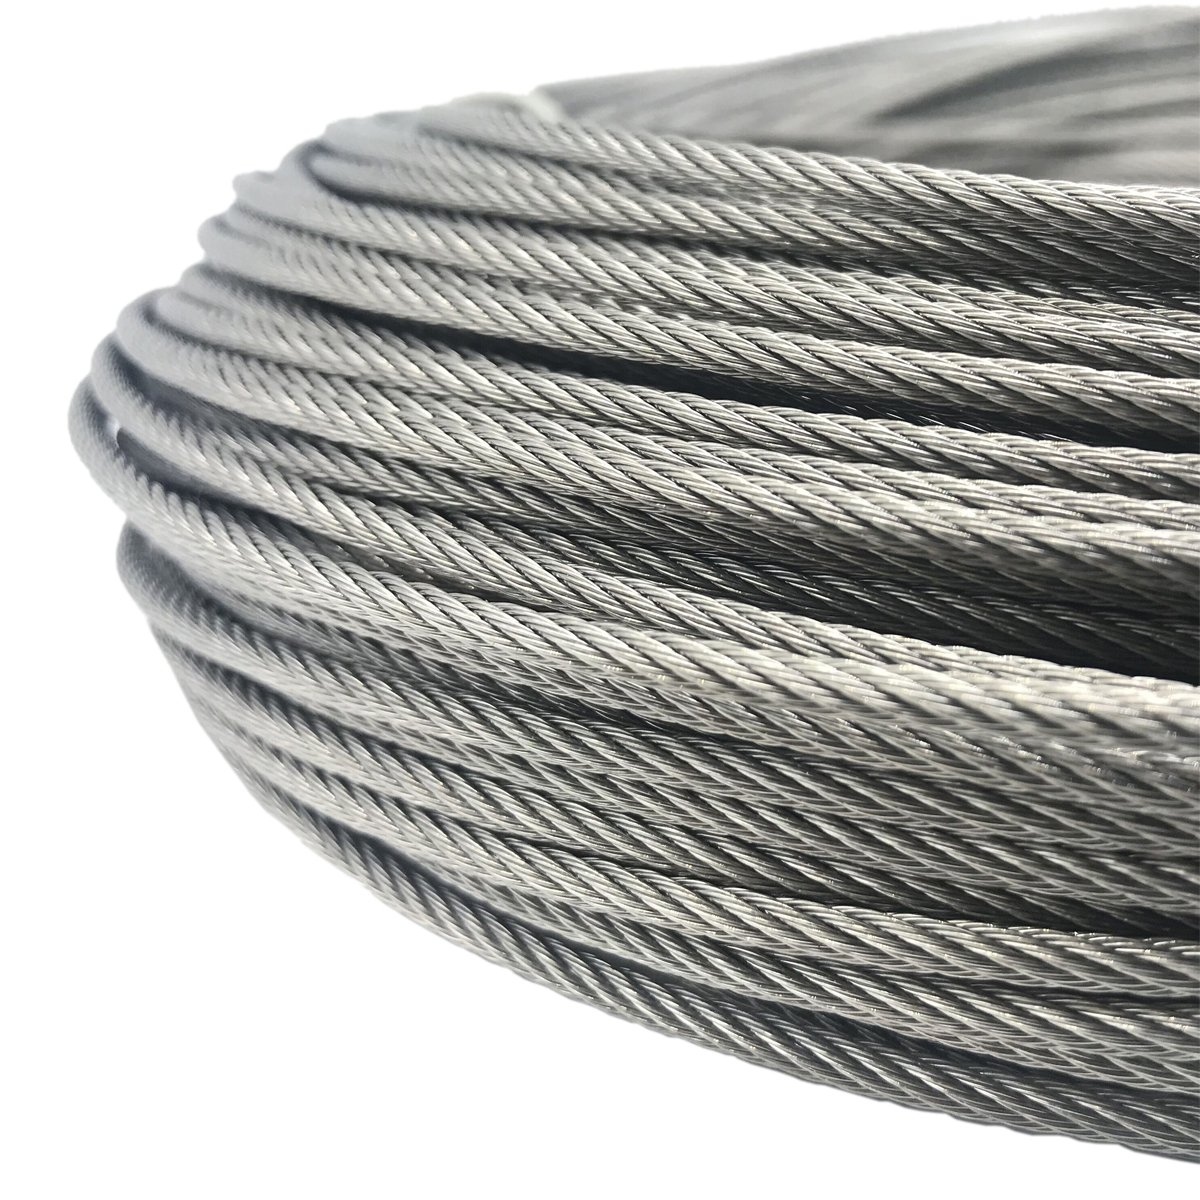 Senmit 1 8 Stainless Steel Aircraft Wire Rope for Deck Cable Railing Kit 7x7 200Feet T316 Marin Grade